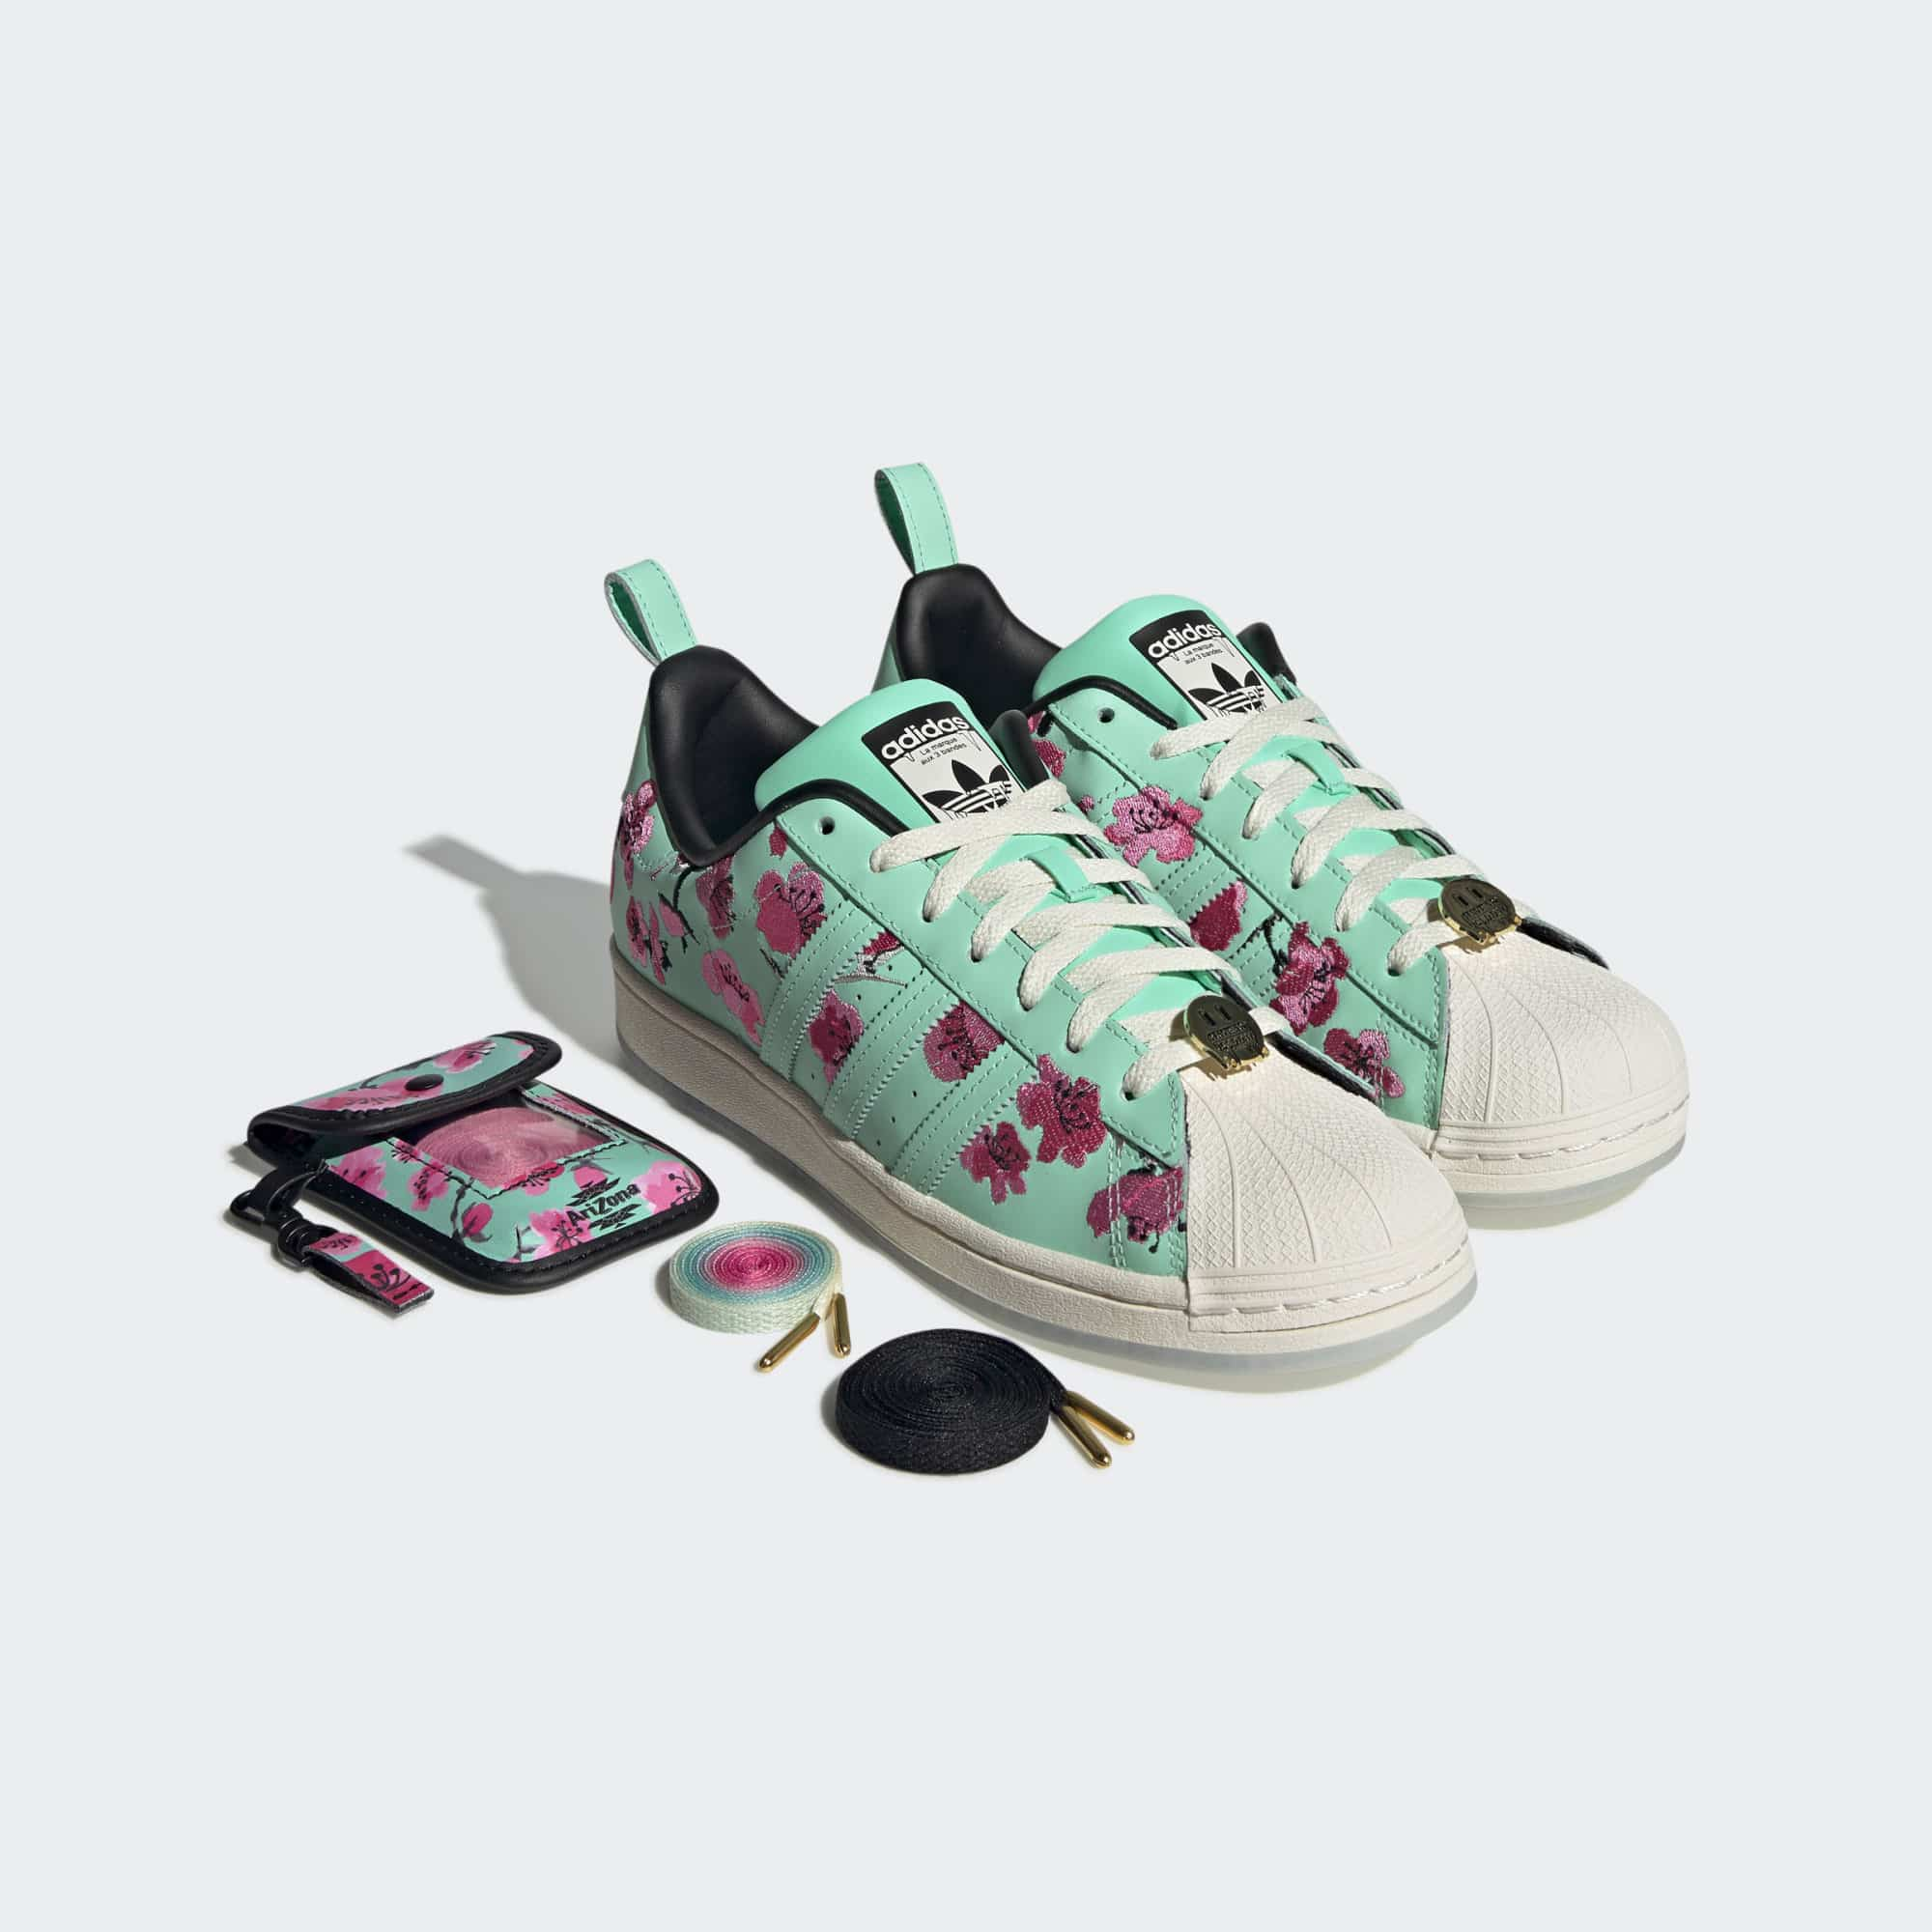 Arizona Iced Tea Adidas All Star Release Date